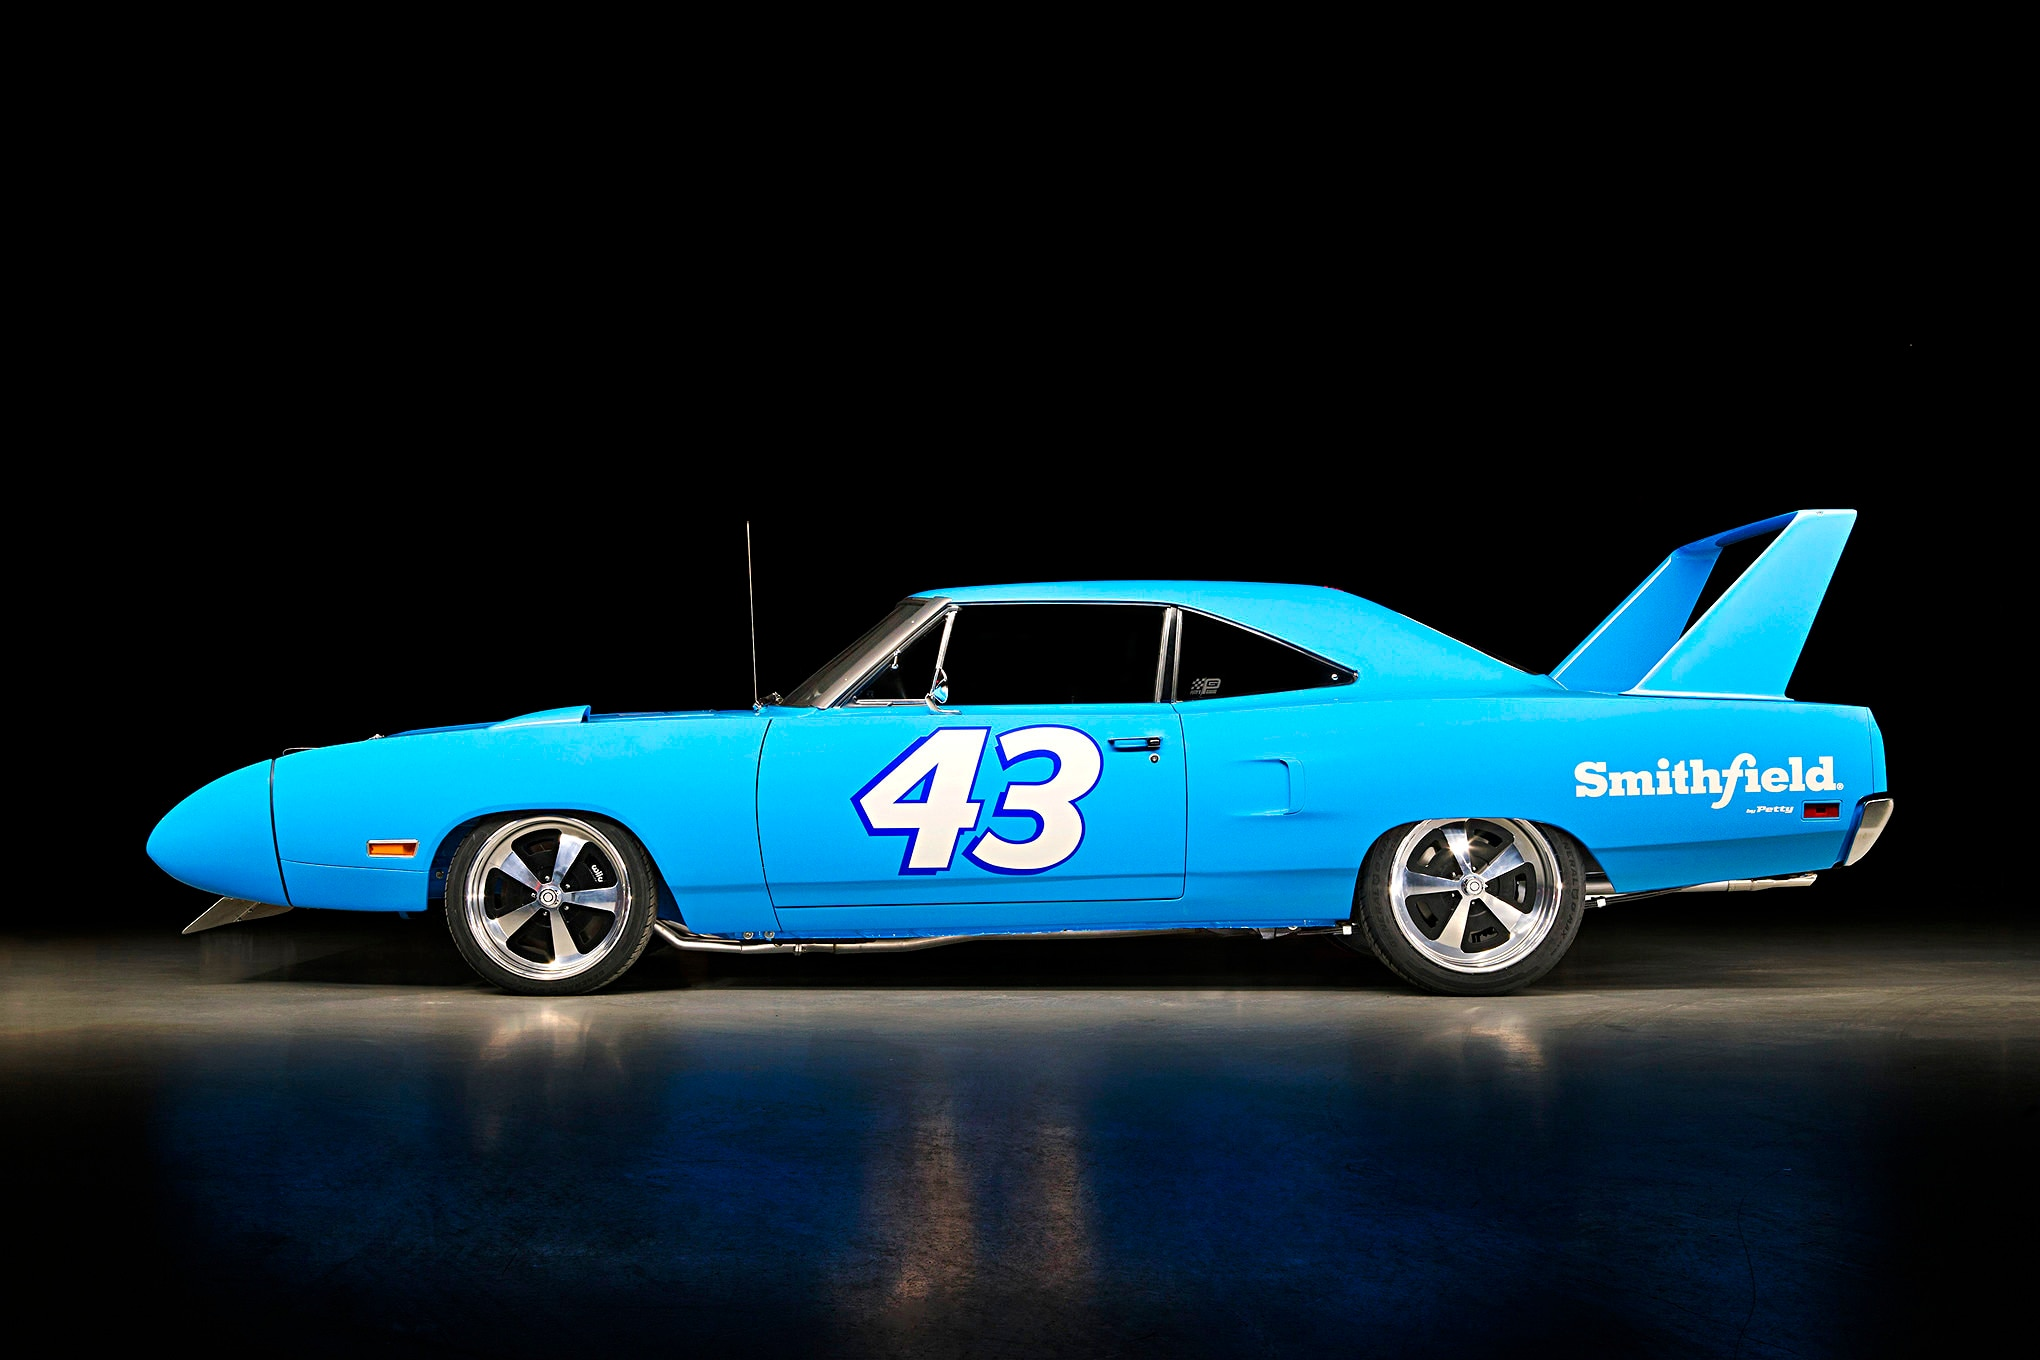 4k Wallpaper Muscle Car Petty S 70 Superbird Is The Ultimate Mope Amp You Can Win